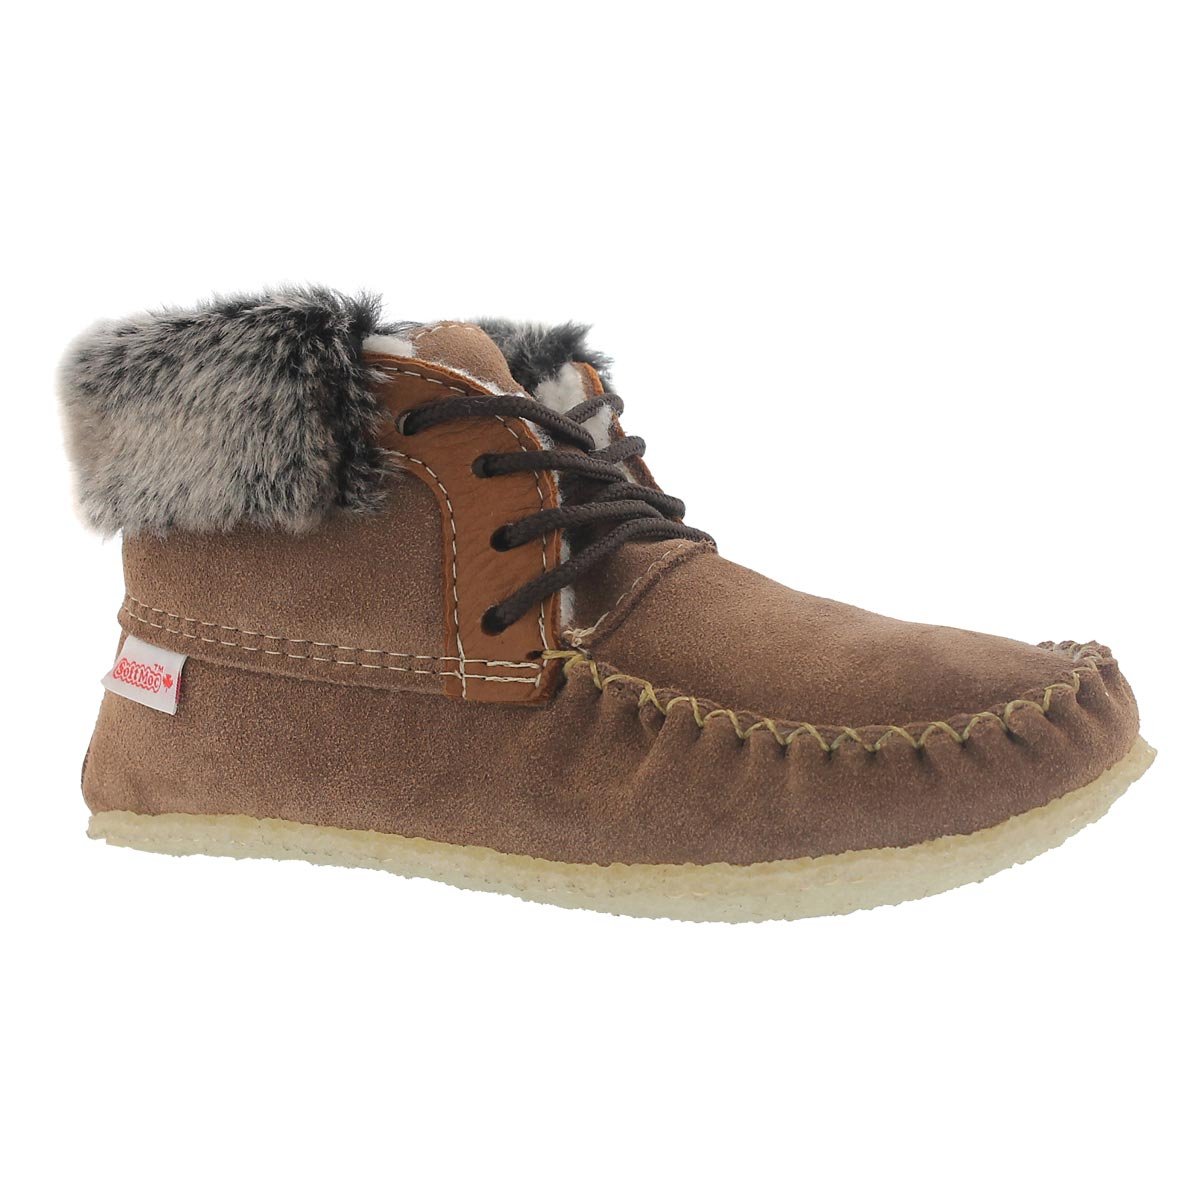 Lds hi cut tobacco suede fur collar moc